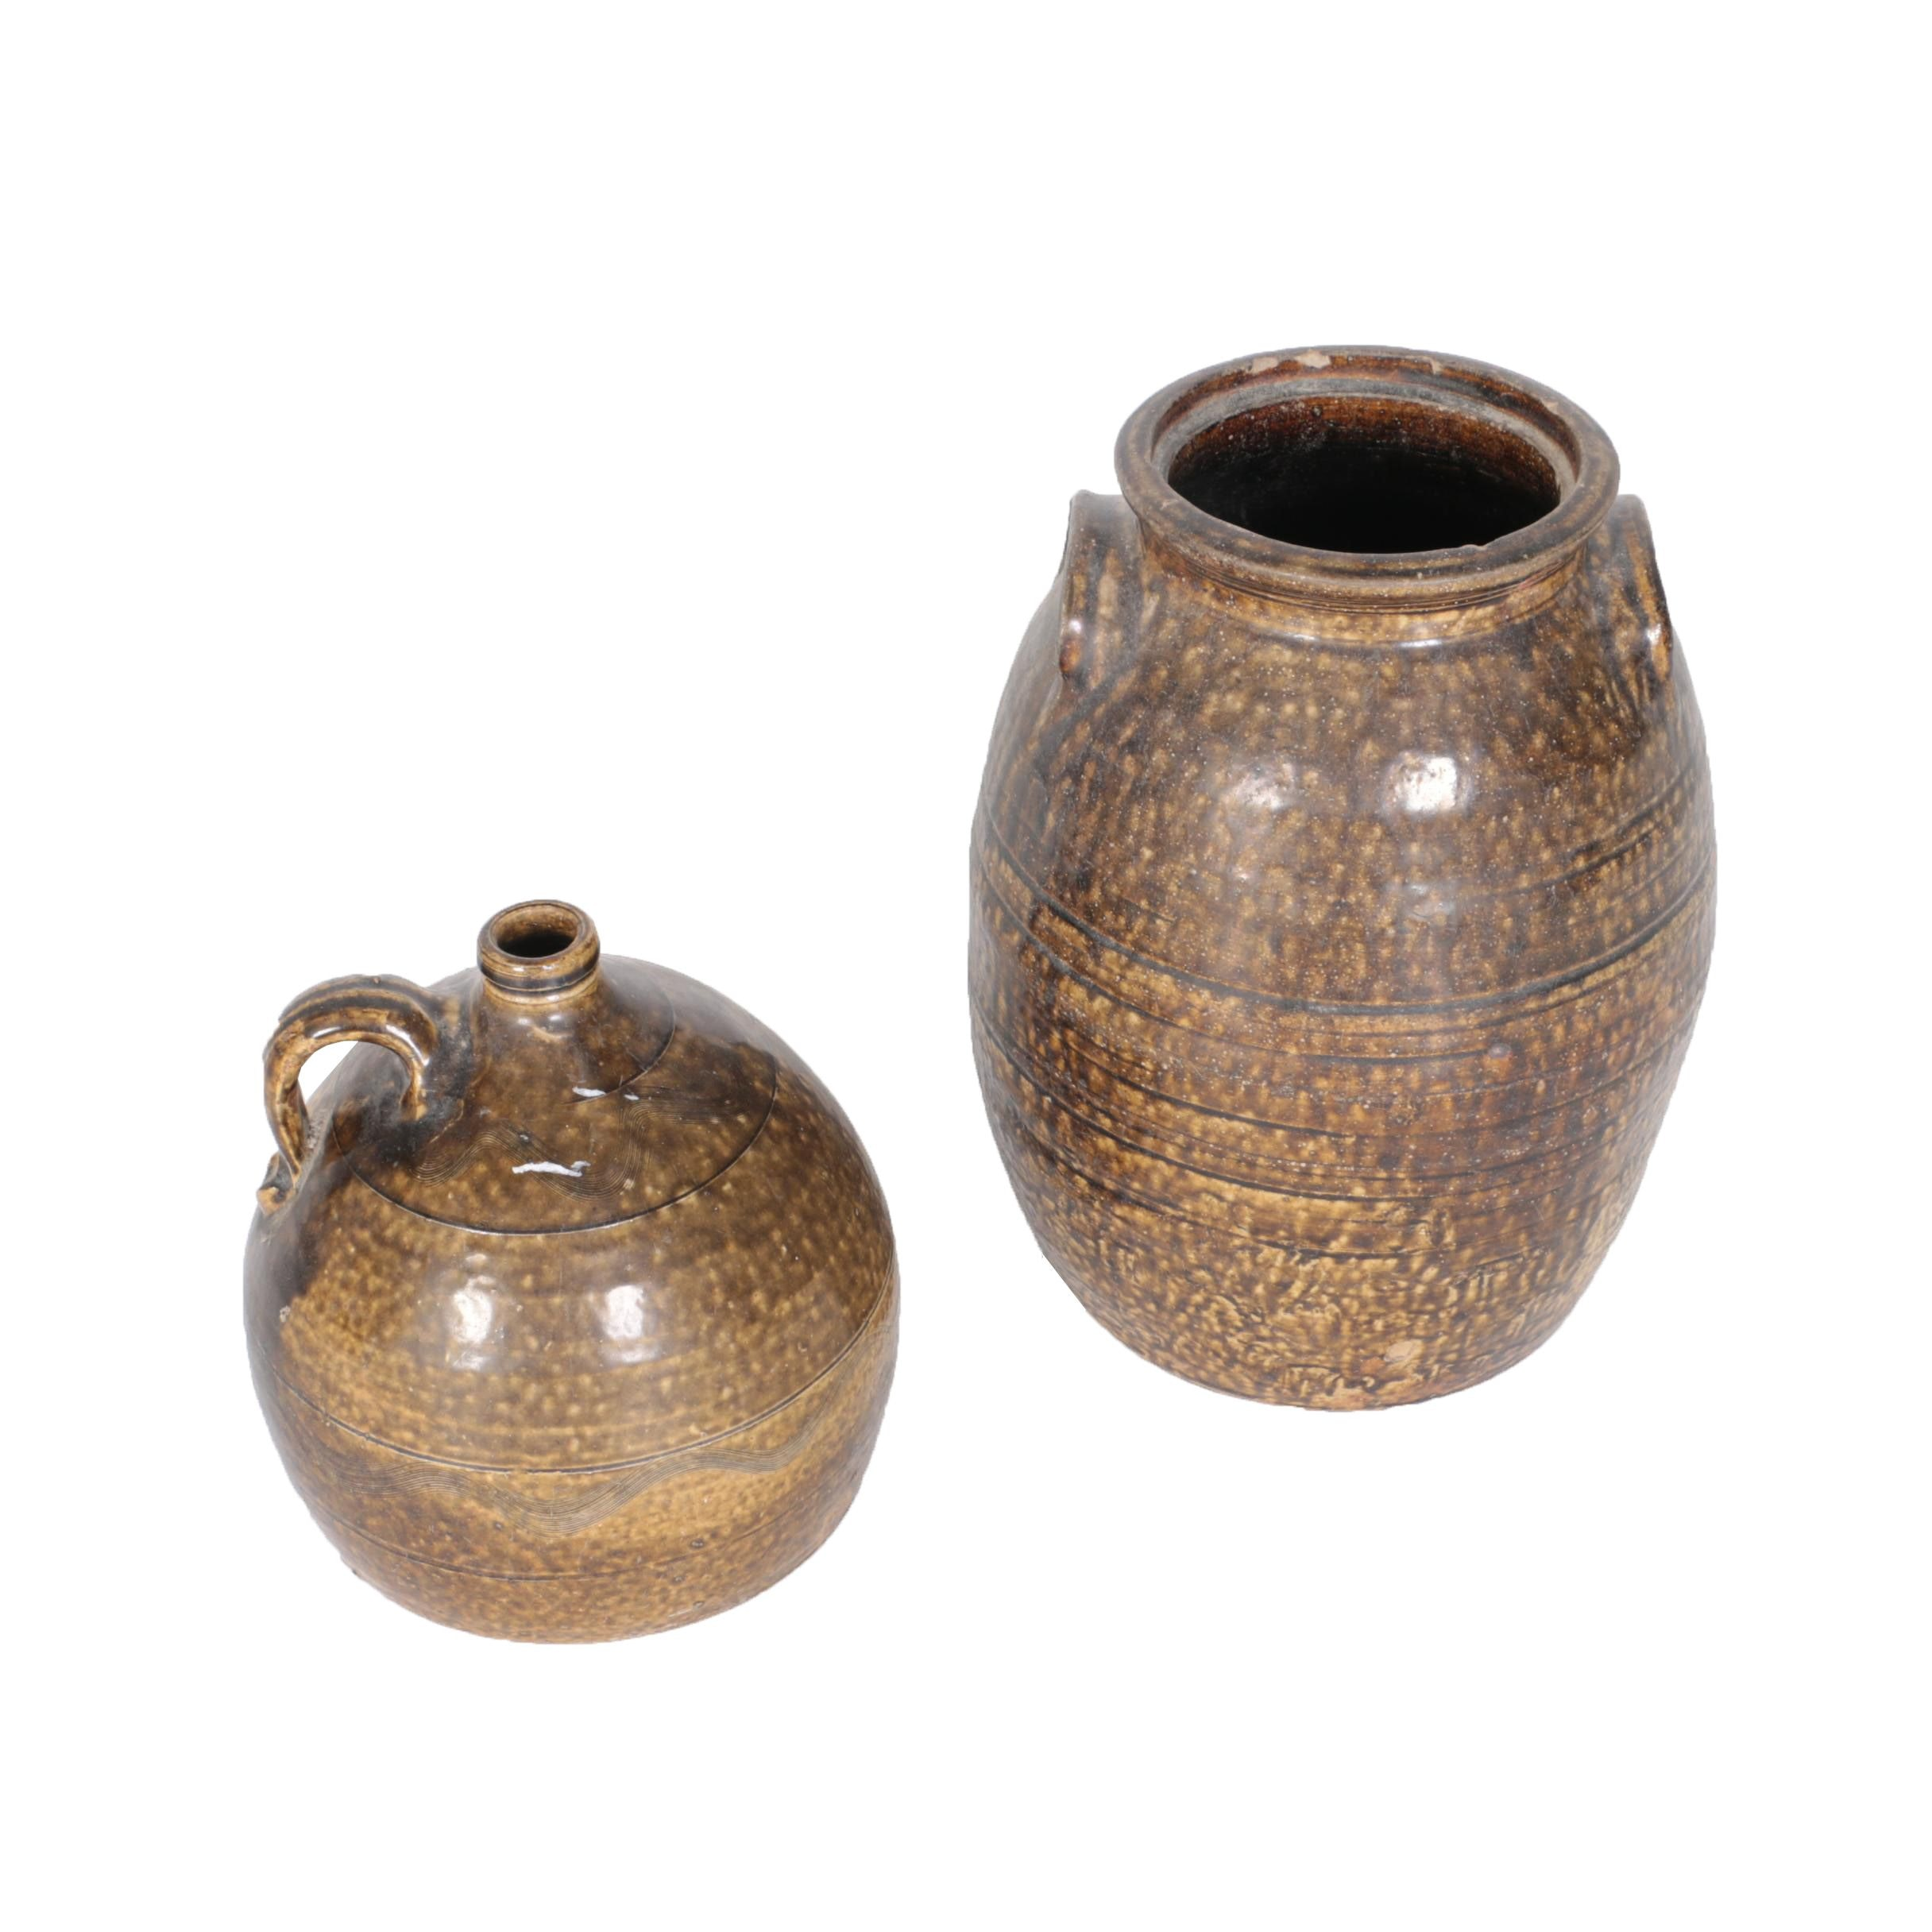 Brown Glazed Stoneware Crock and Jug, Late 19th-Century